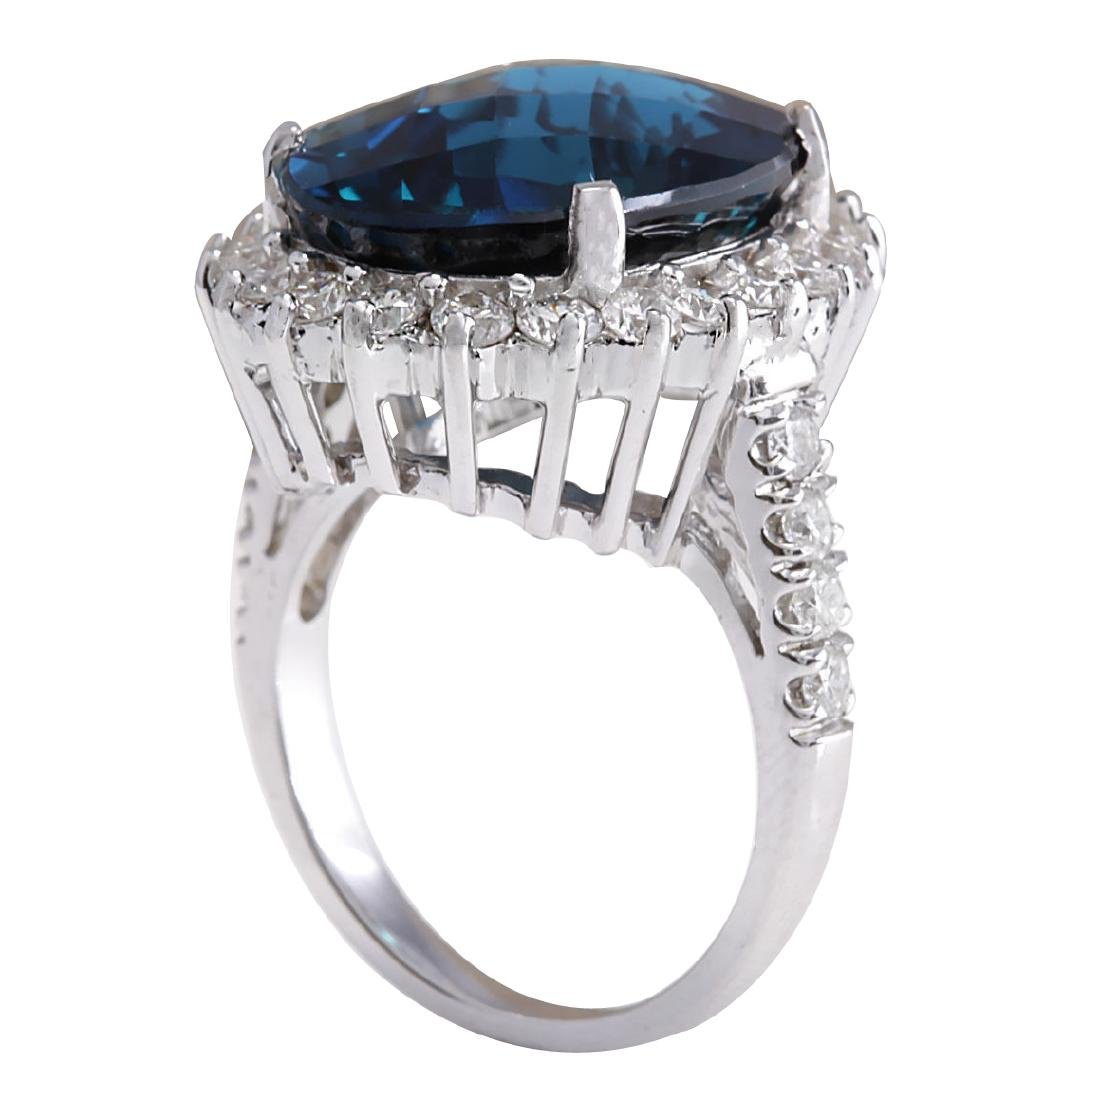 15.99Ct Natural London Blue Topaz And Diamond Ring - 3